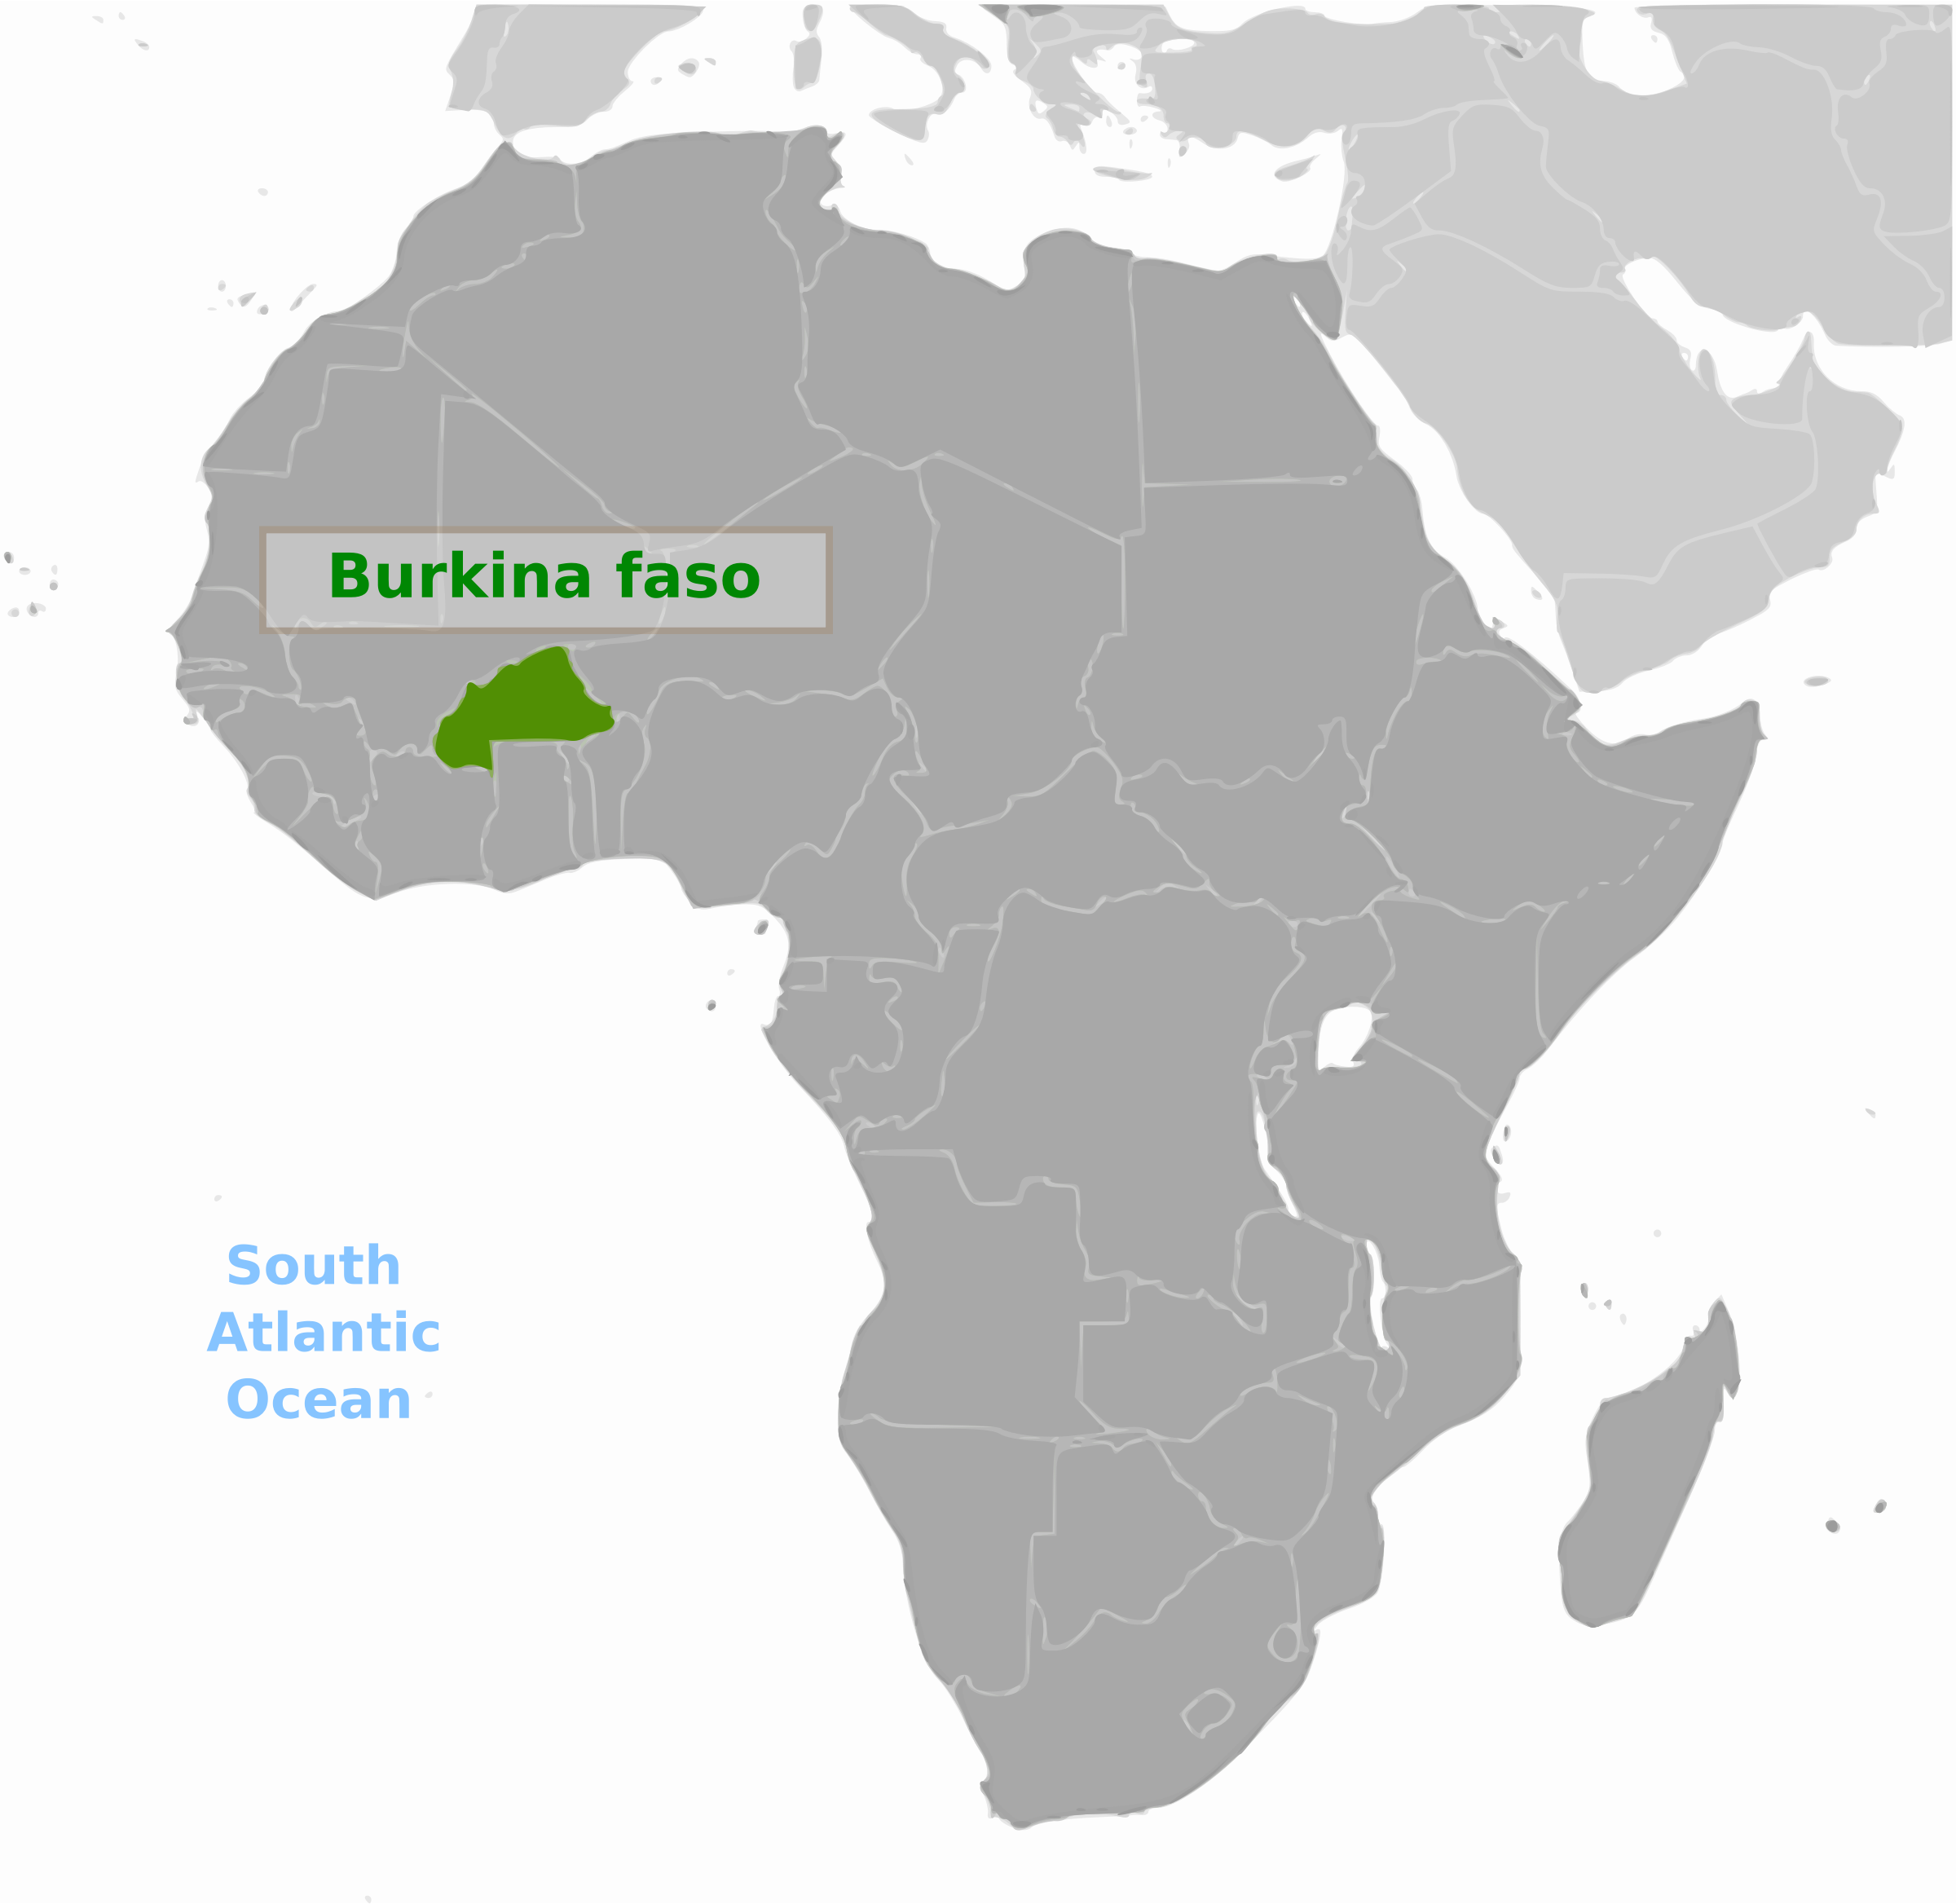 Burkina Faso location label by wpclipart